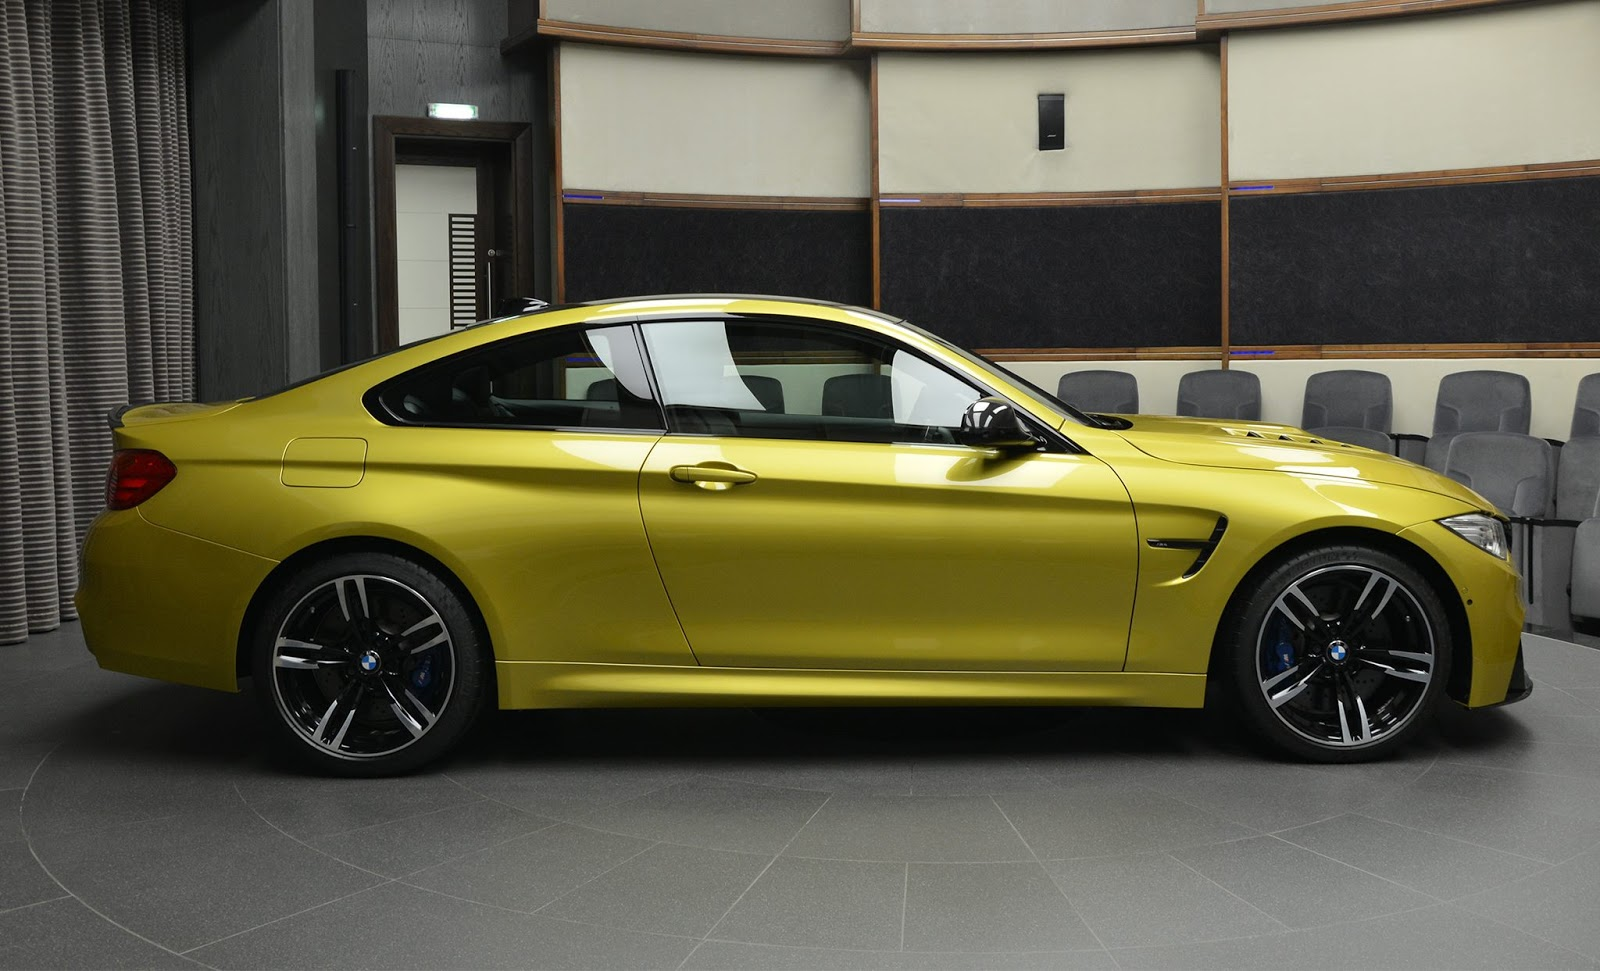 Austin Yellow F8 BMW M4 in Abu Dhabi (6)